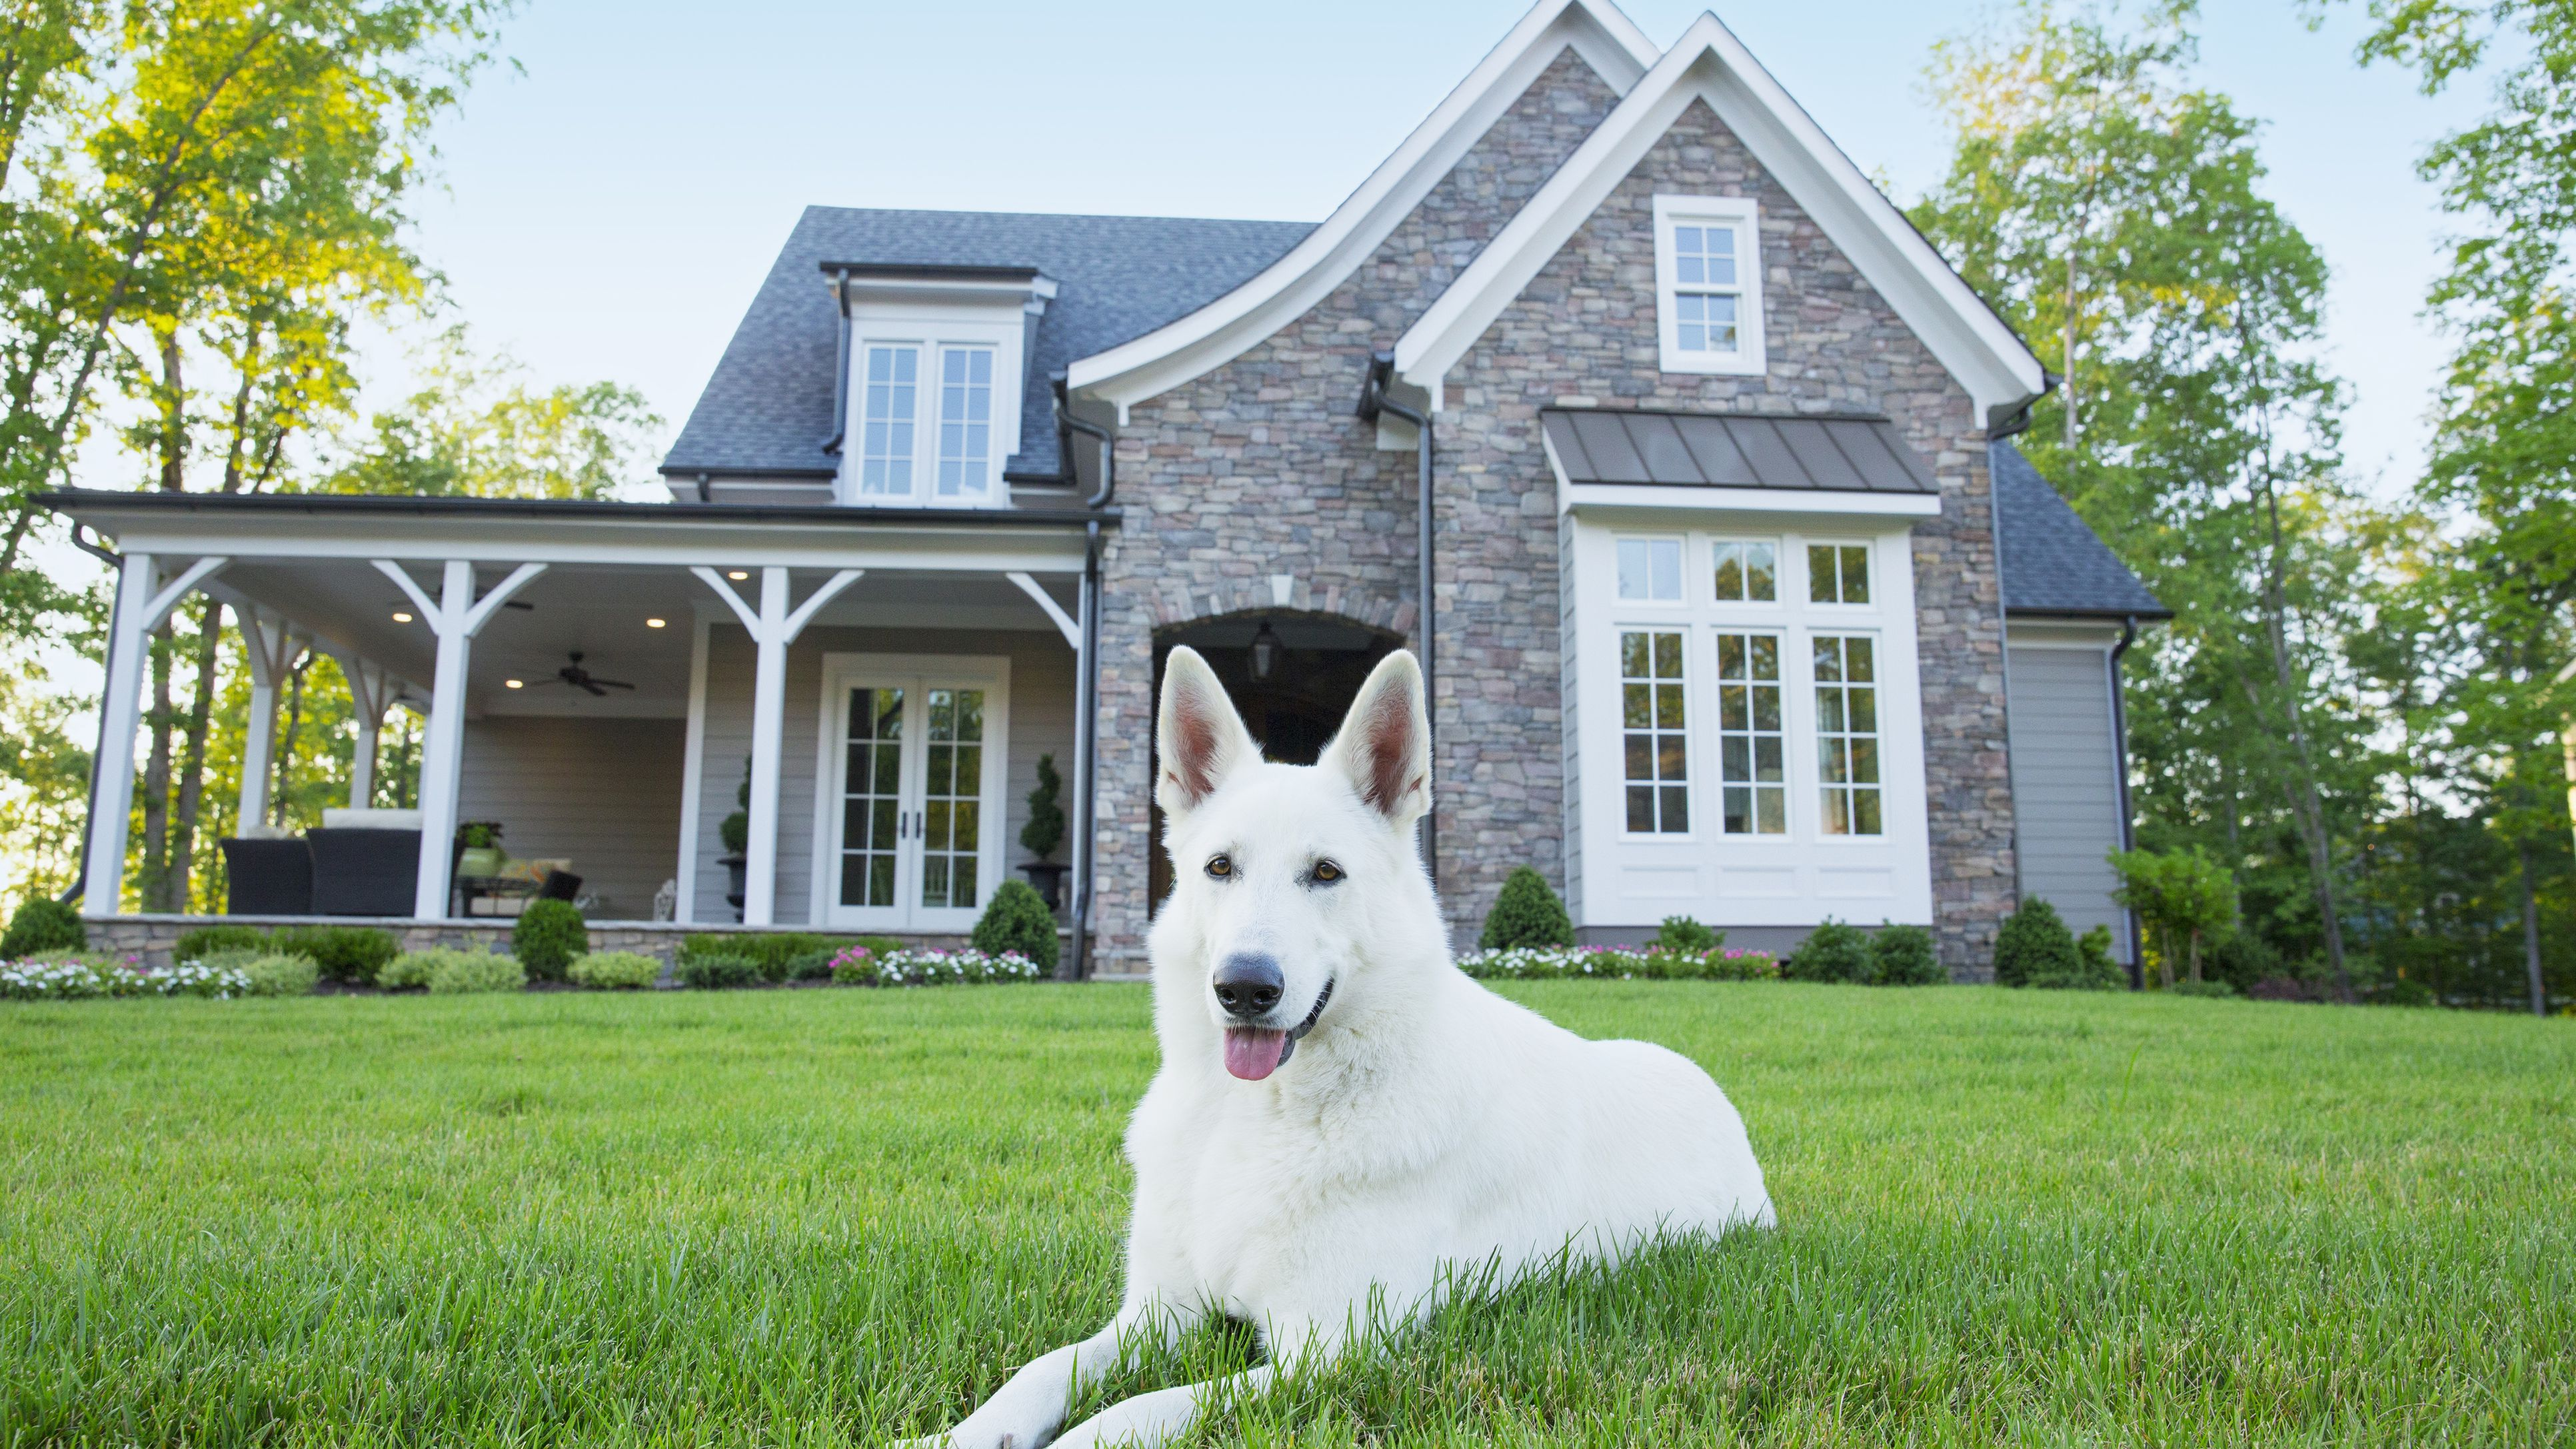 https://www.thesprucepets.com/thmb/wM6ooTWSJcmgBWR4awId1BKncwE=/3865x2174/smart/filters:no_upscale()/dog-laying-in-front-of-suburban-house-519517073-5921f9733df78cf5fa9b382f.jpg